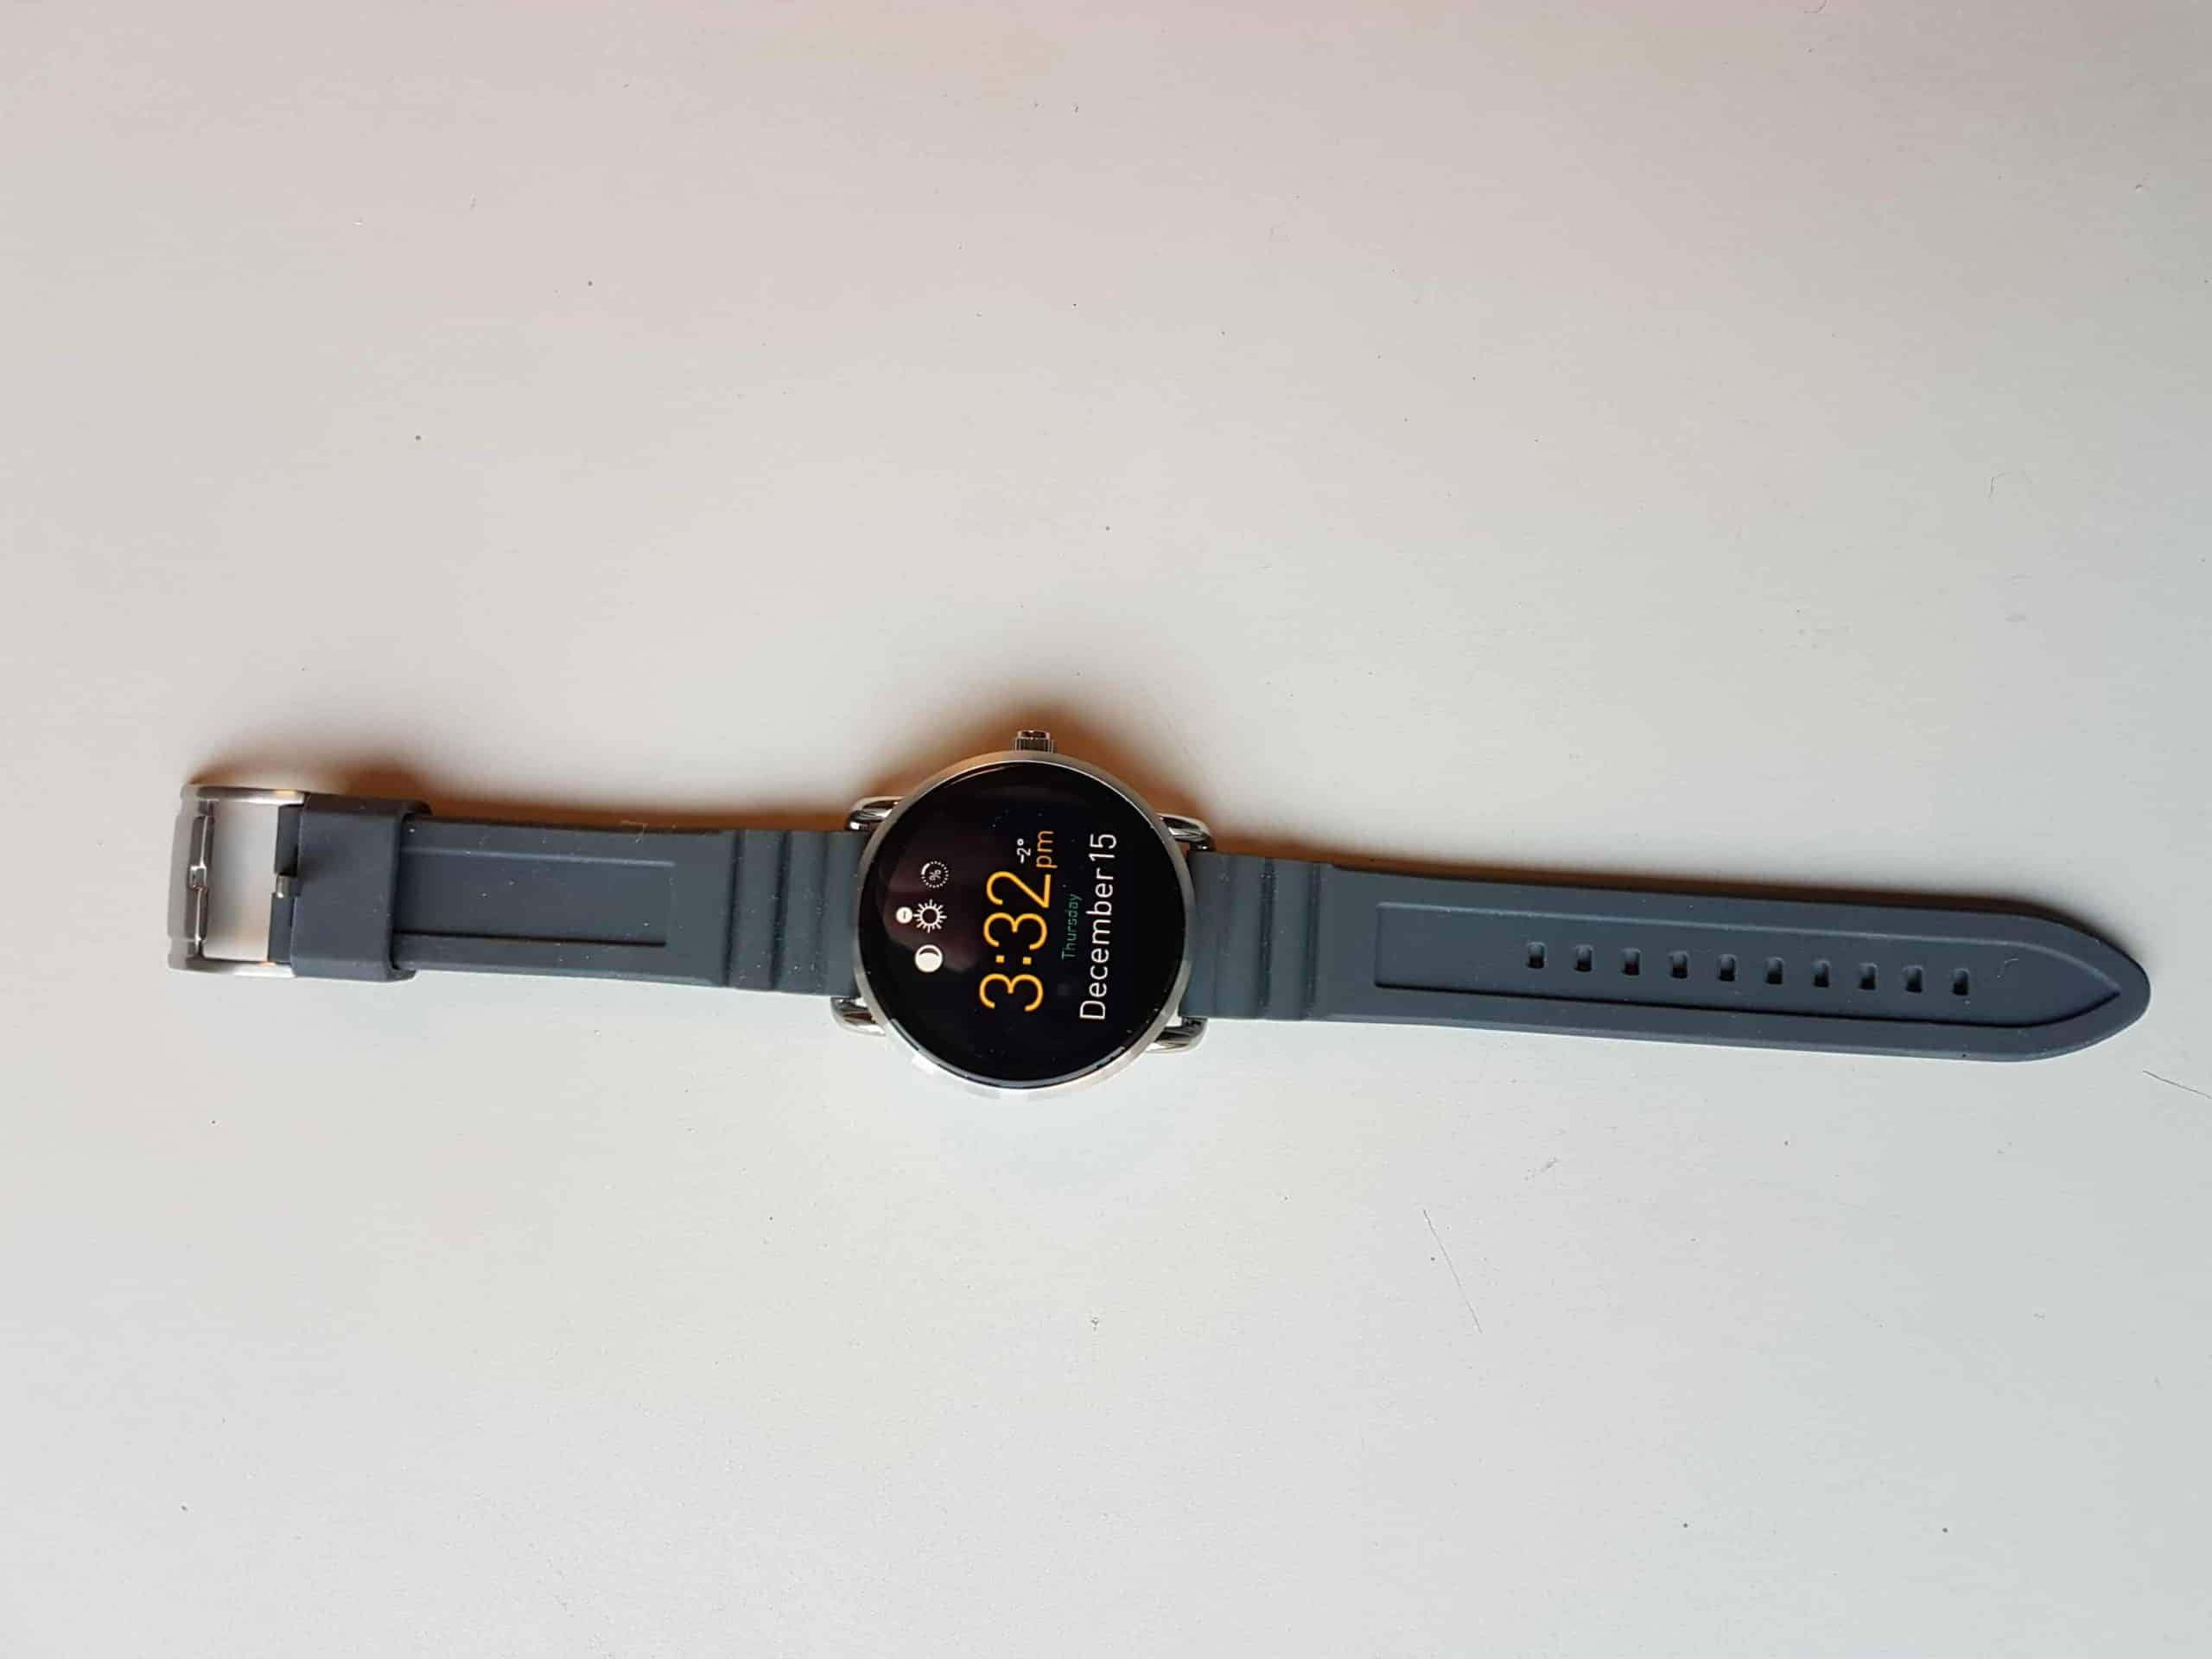 A Fossil Q smartwatch with gray straps.